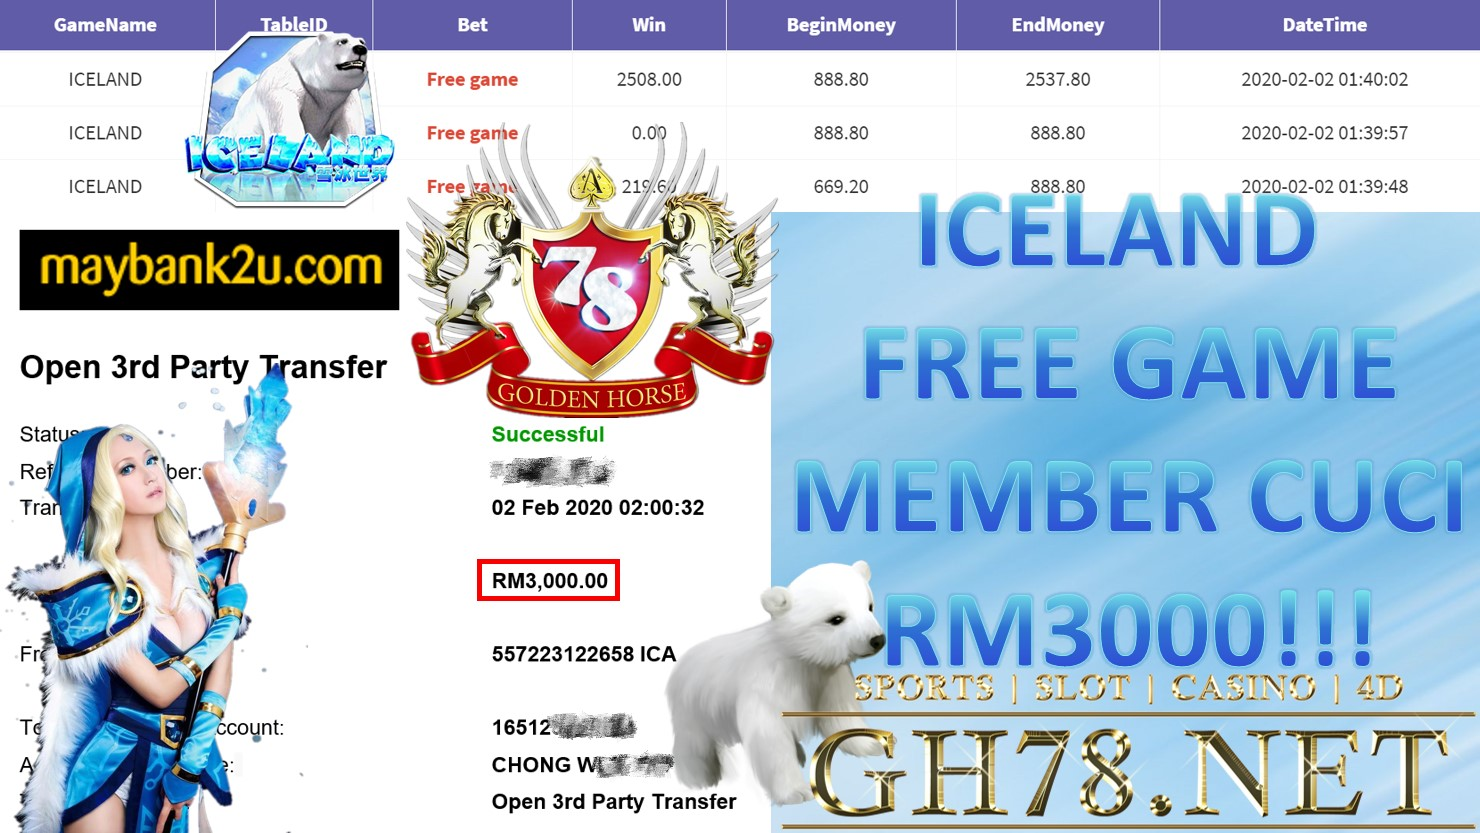 2020 NEW YEAR !!! MEMBER MAIN 918KISS, ISLAND ,WITHDRAW RM3000 !!!